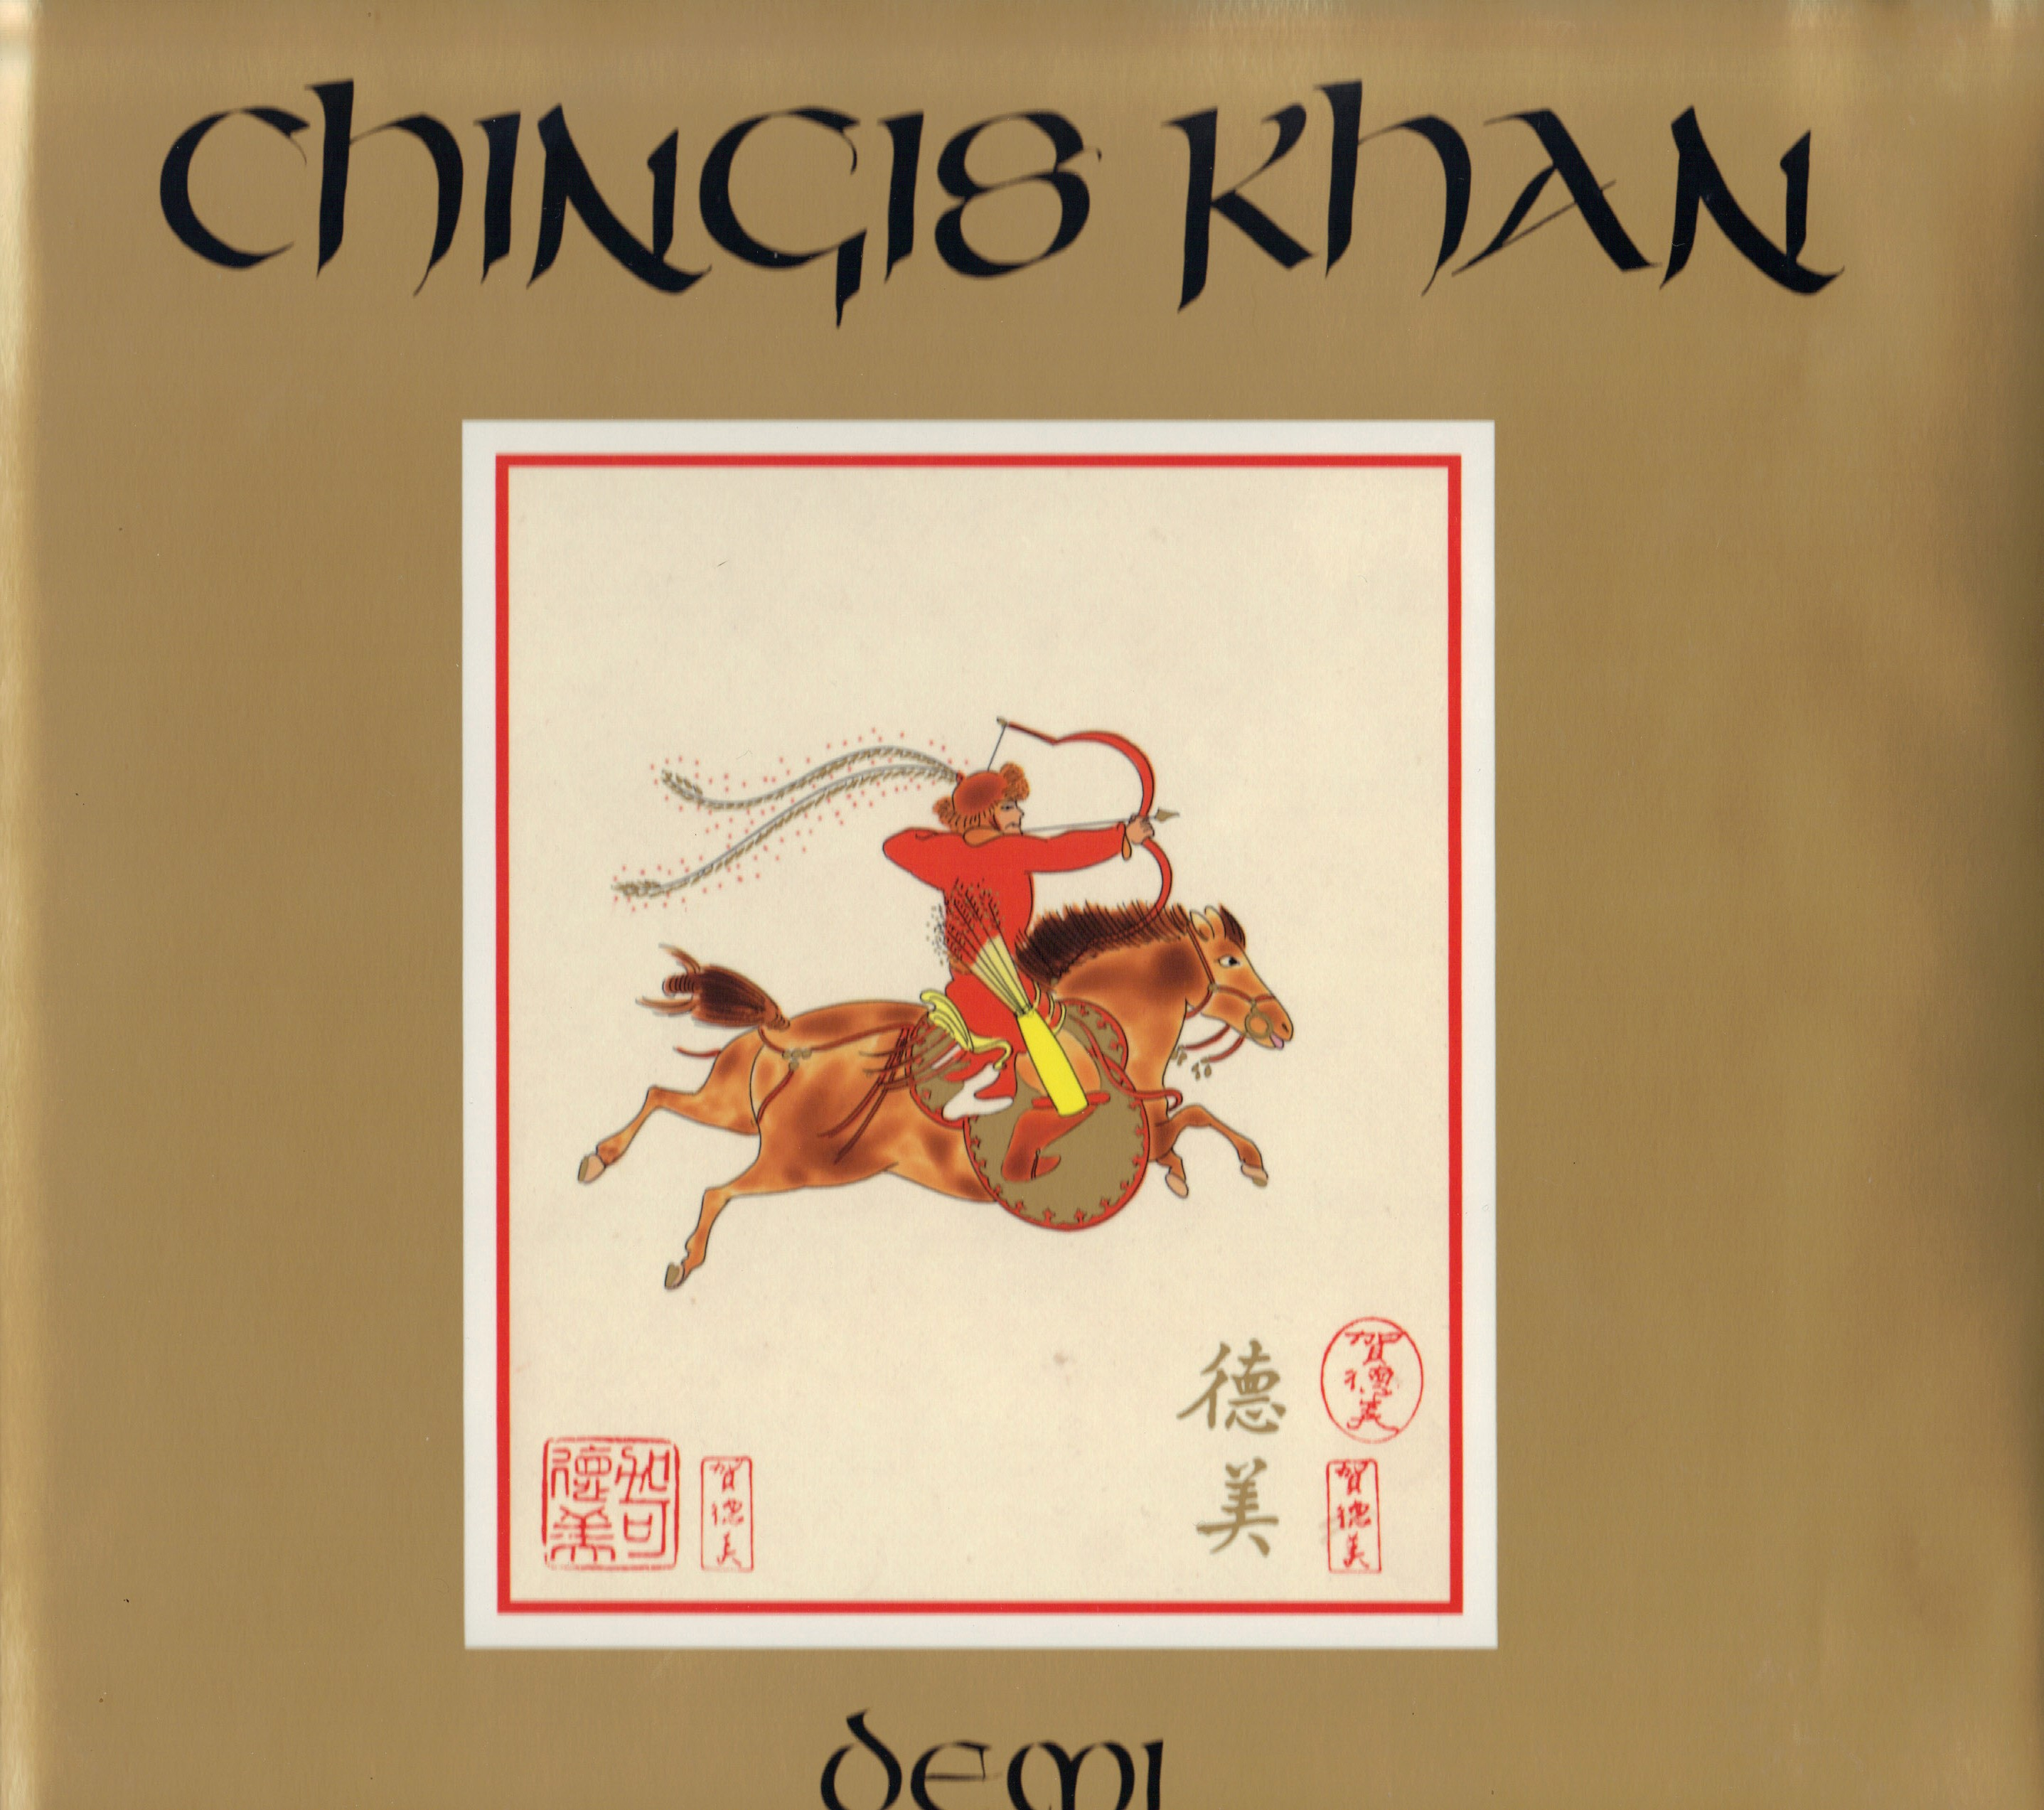 Image for CHINGIS KAHN